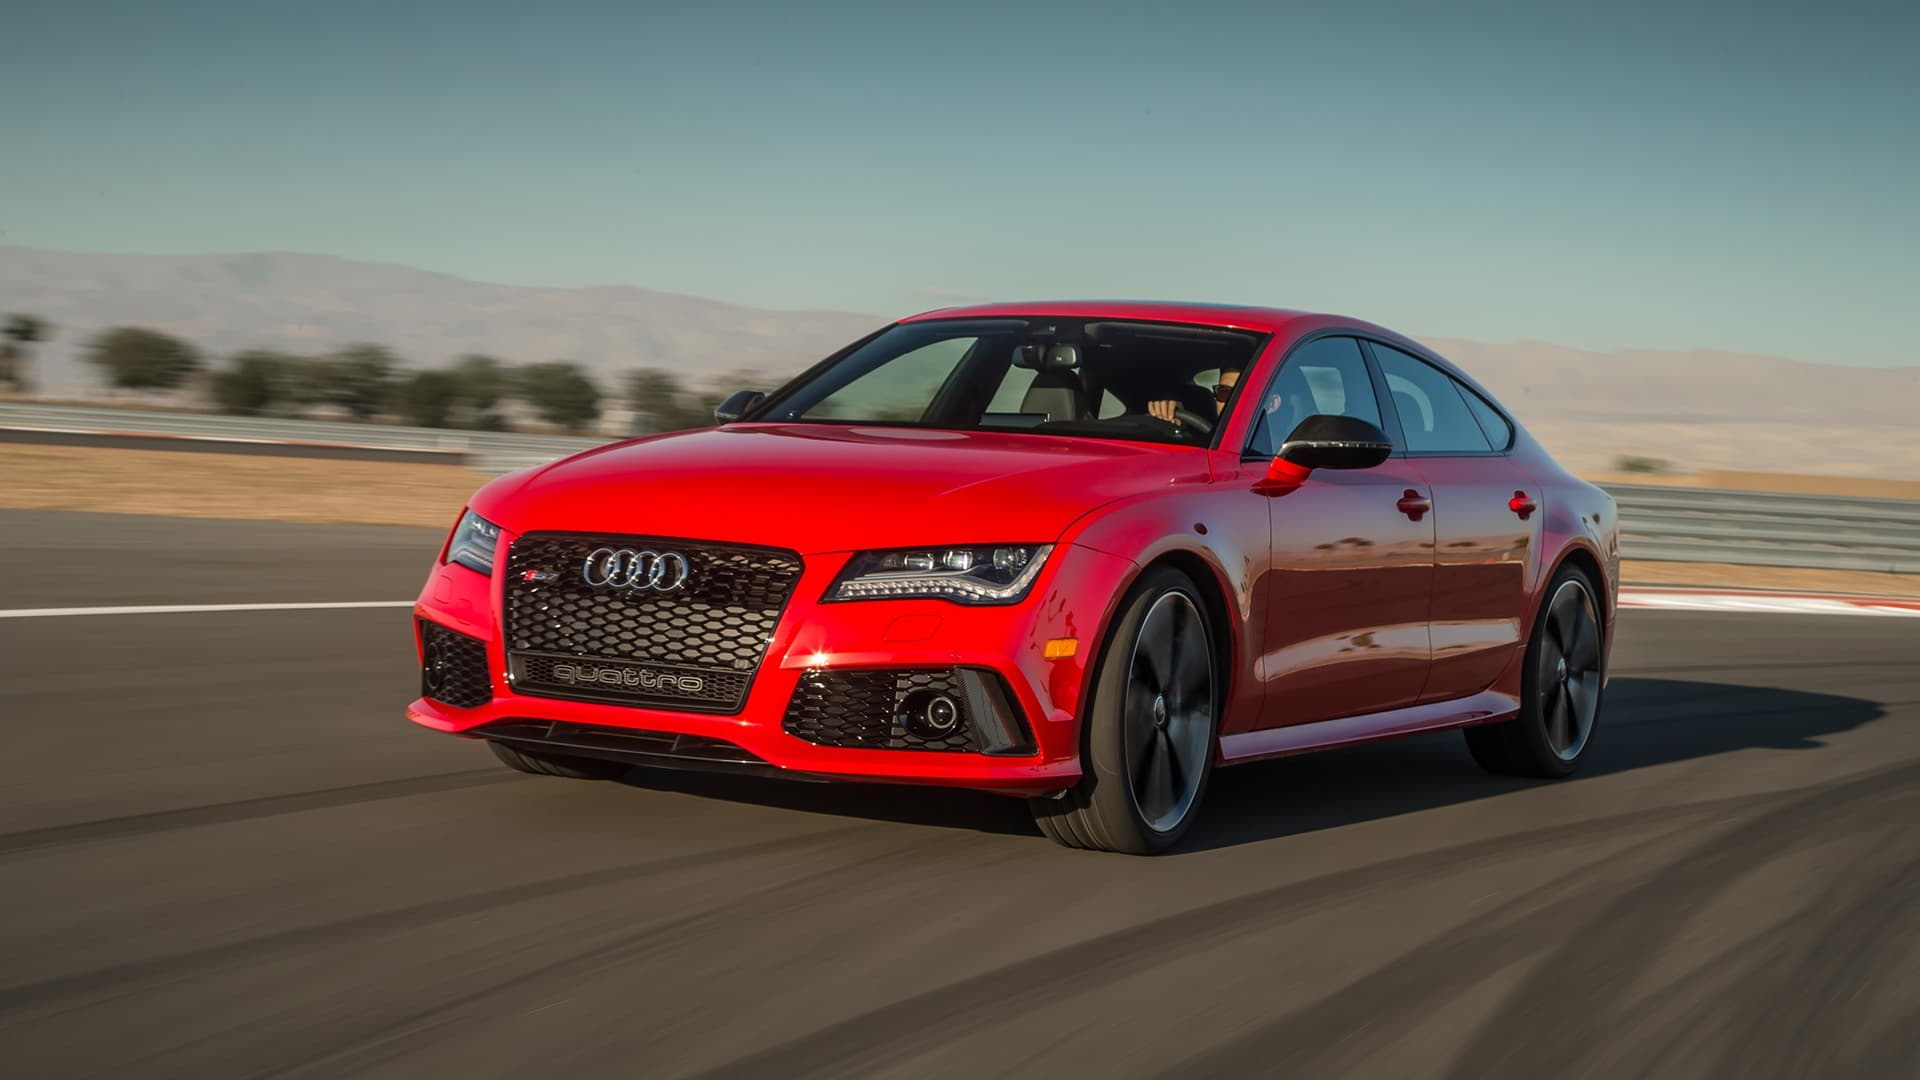 Audi Rs3 Wallpaper Hd 2016 Audi Rs7 Wallpapers Hd High Quality Resolution Download